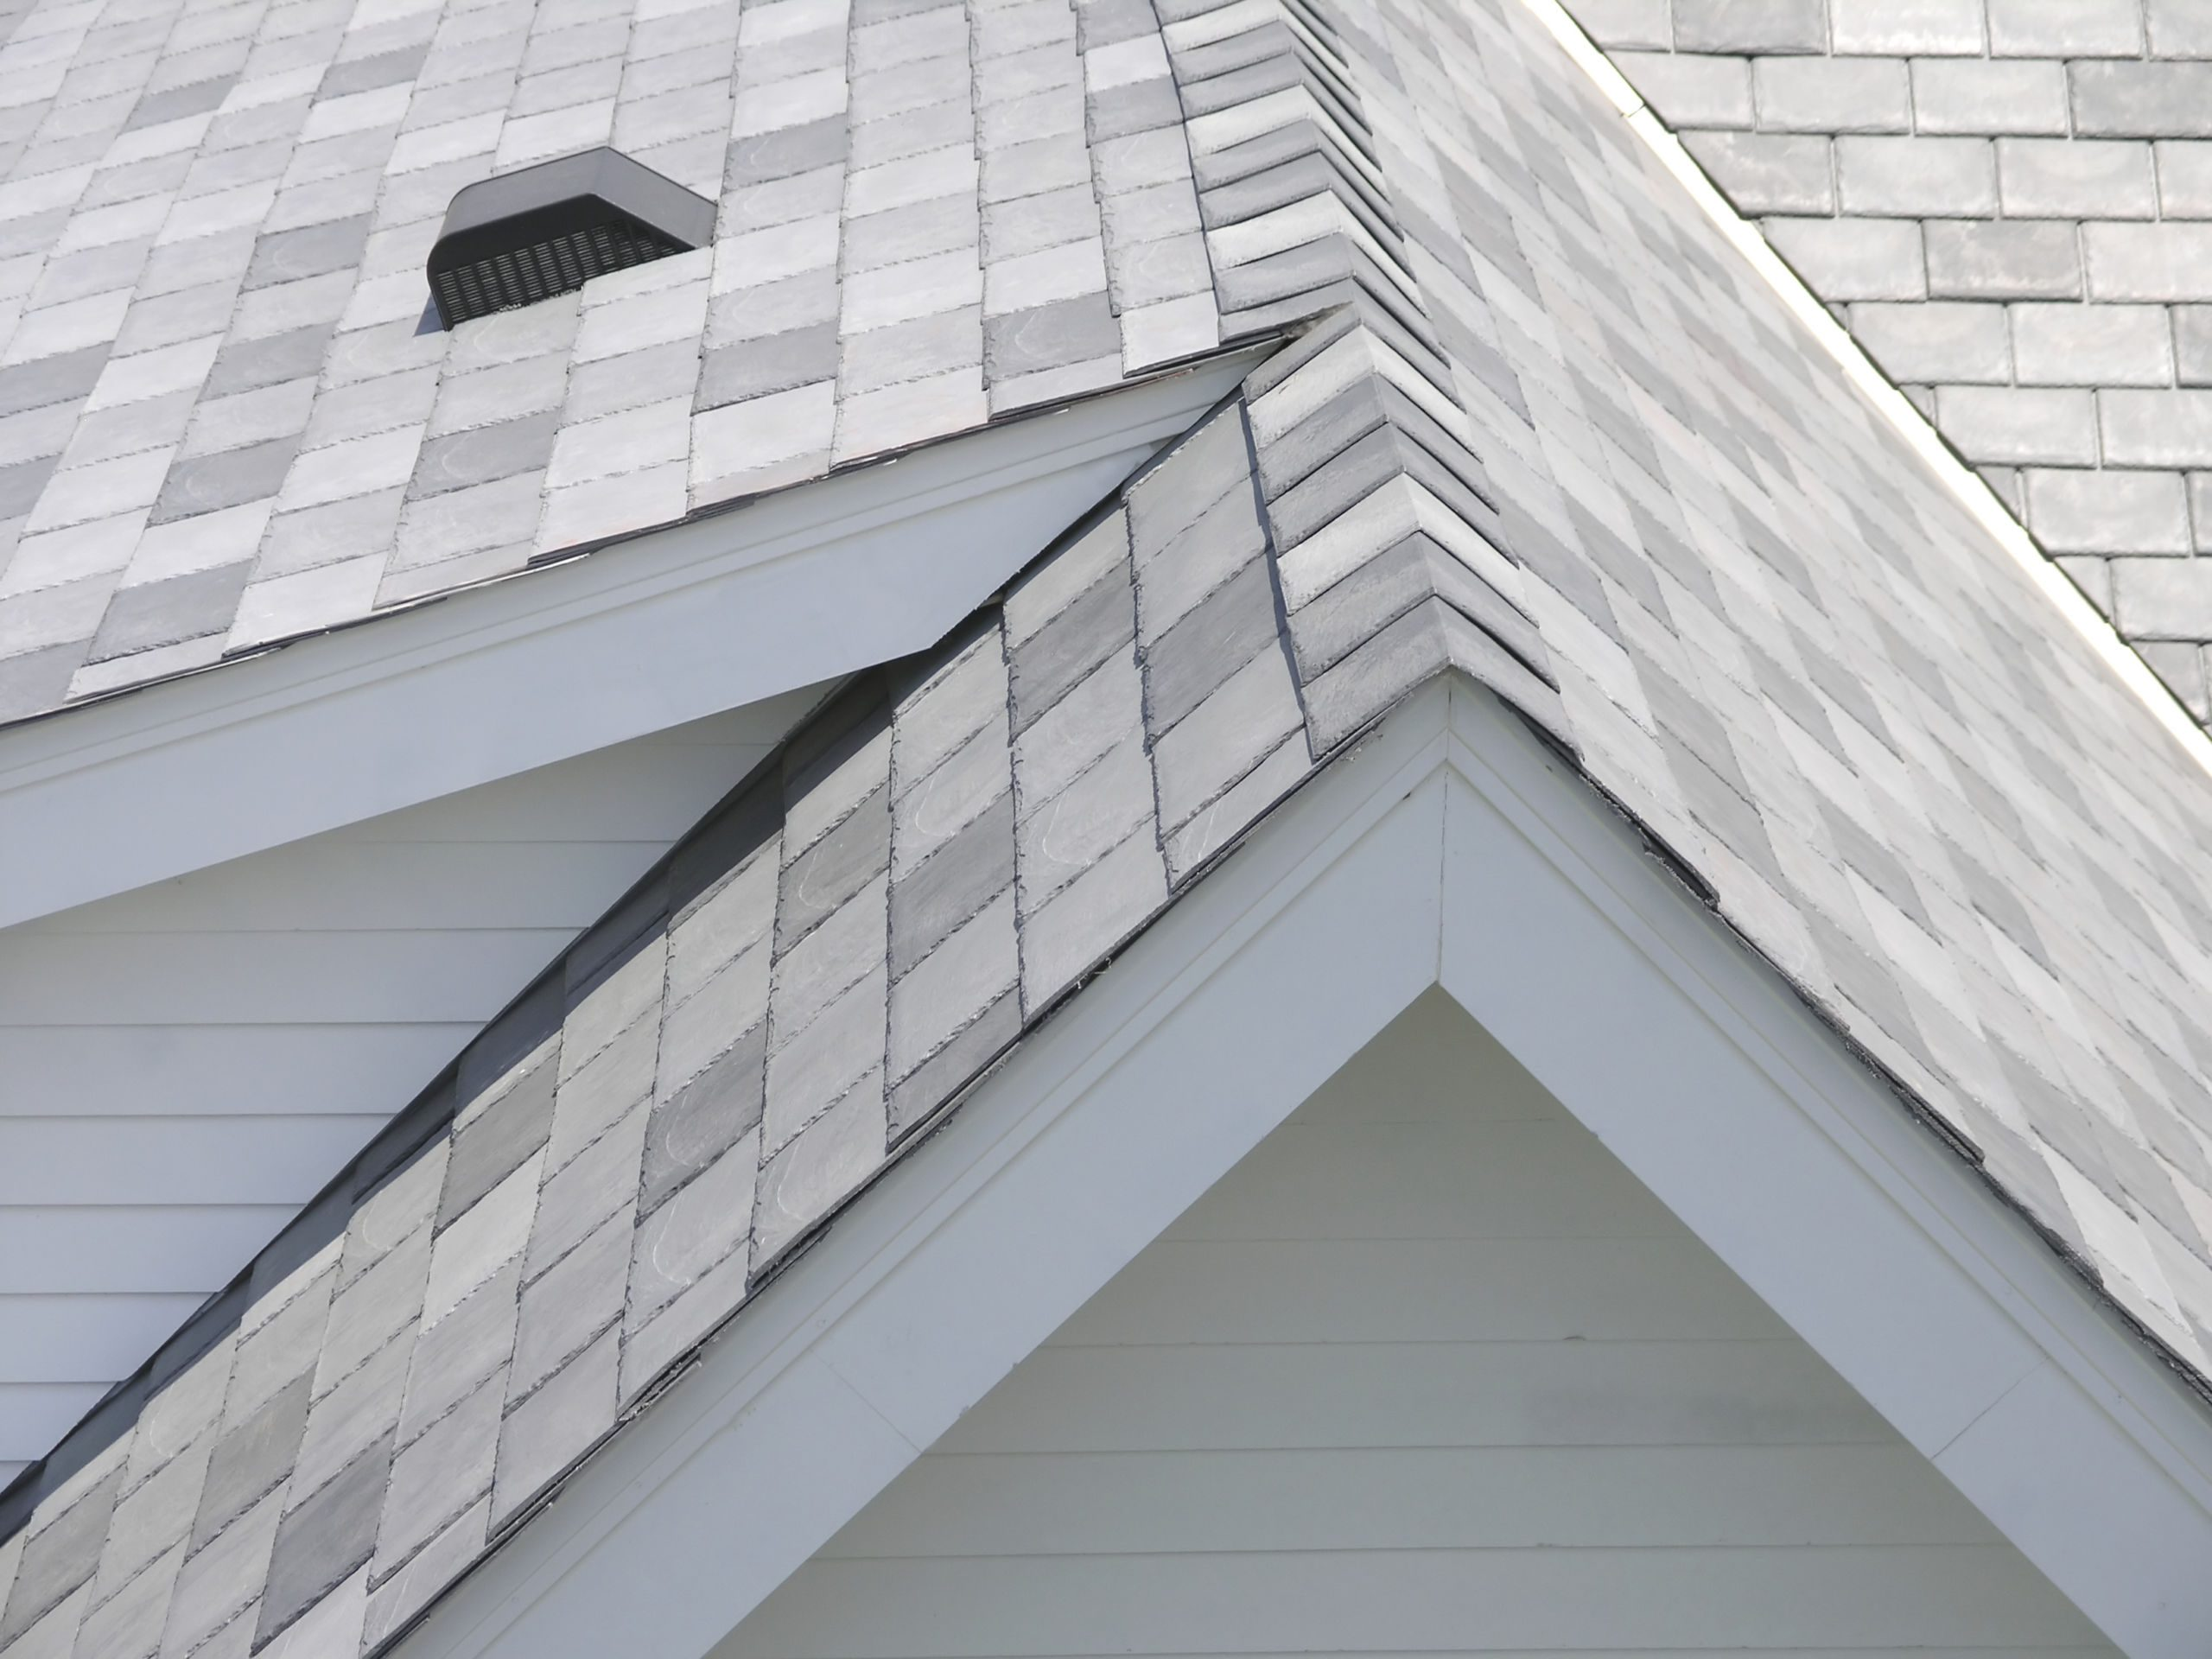 Cool roof shingles - Eco Friendly Roofing